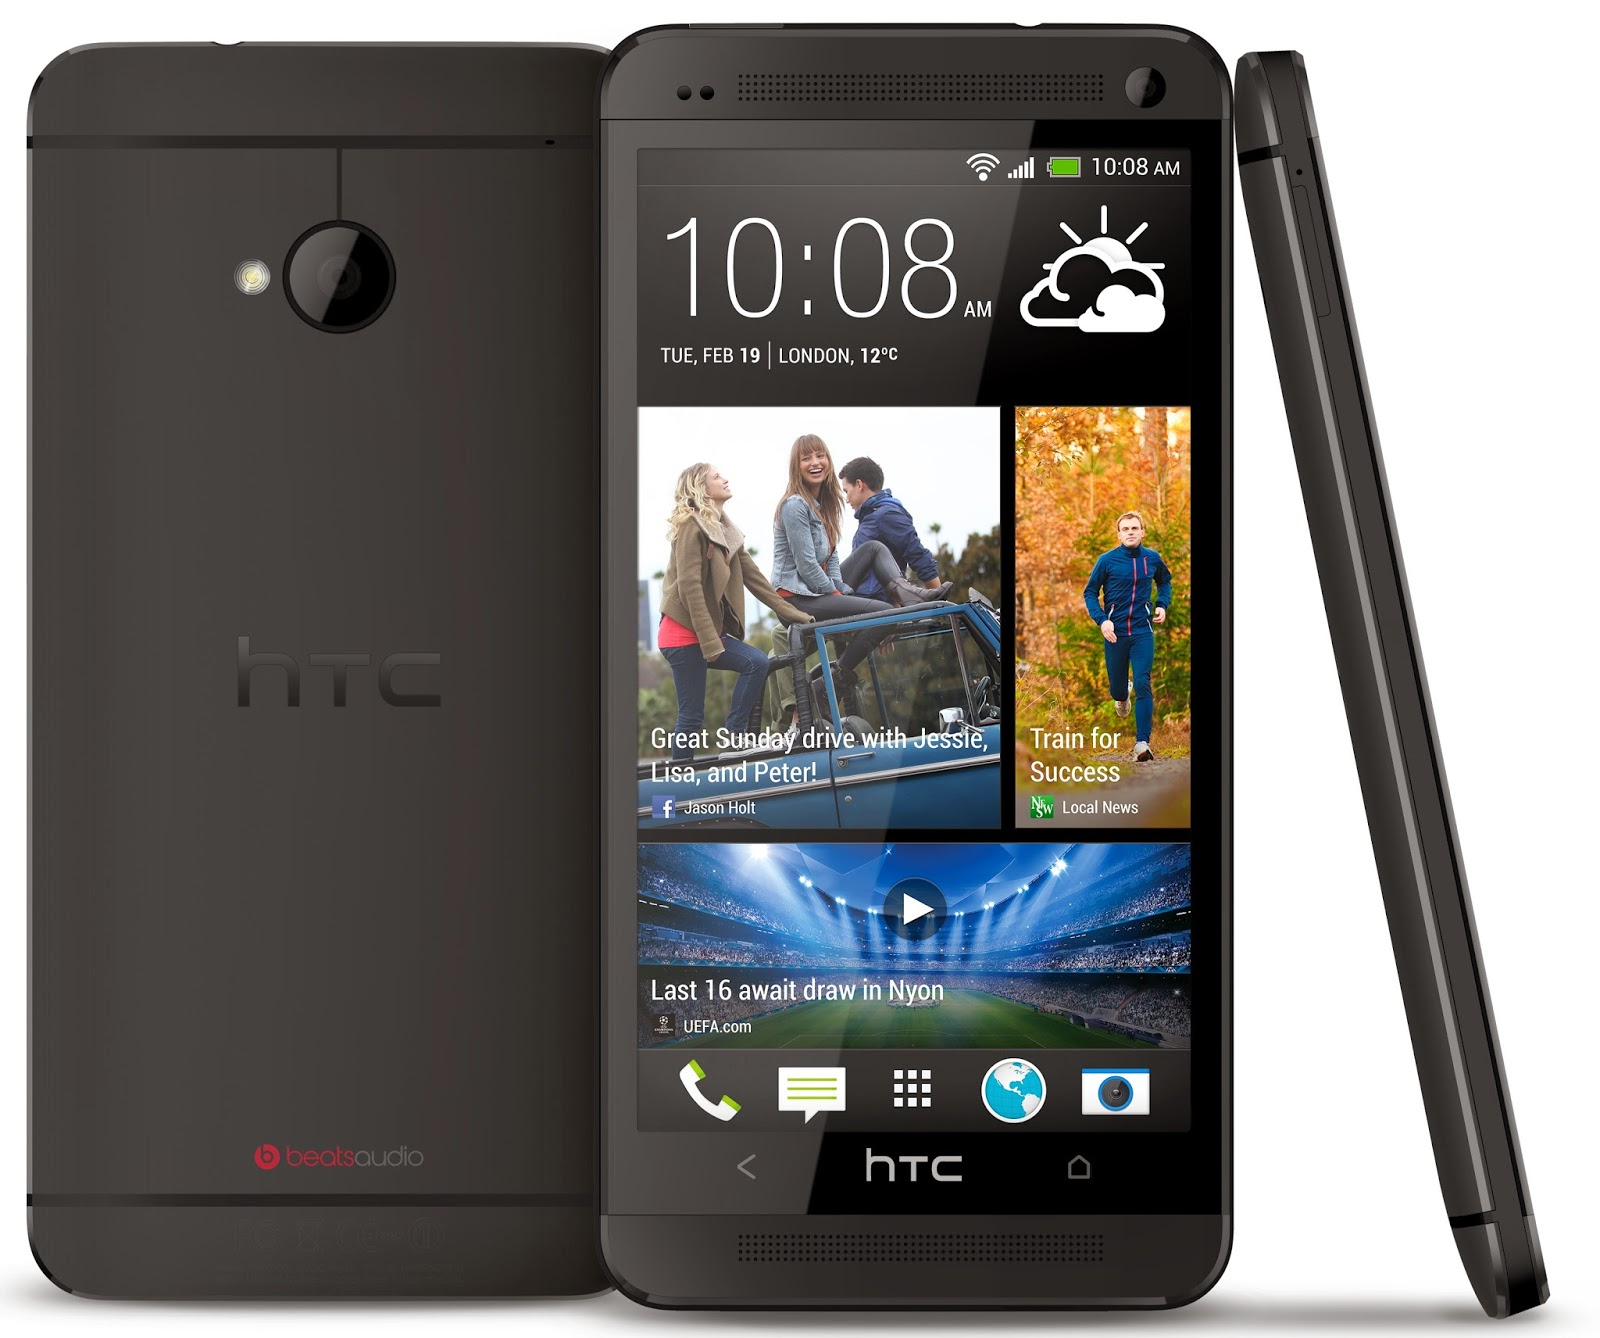 HTC One M7 gets new update in the US with Sense 6.0